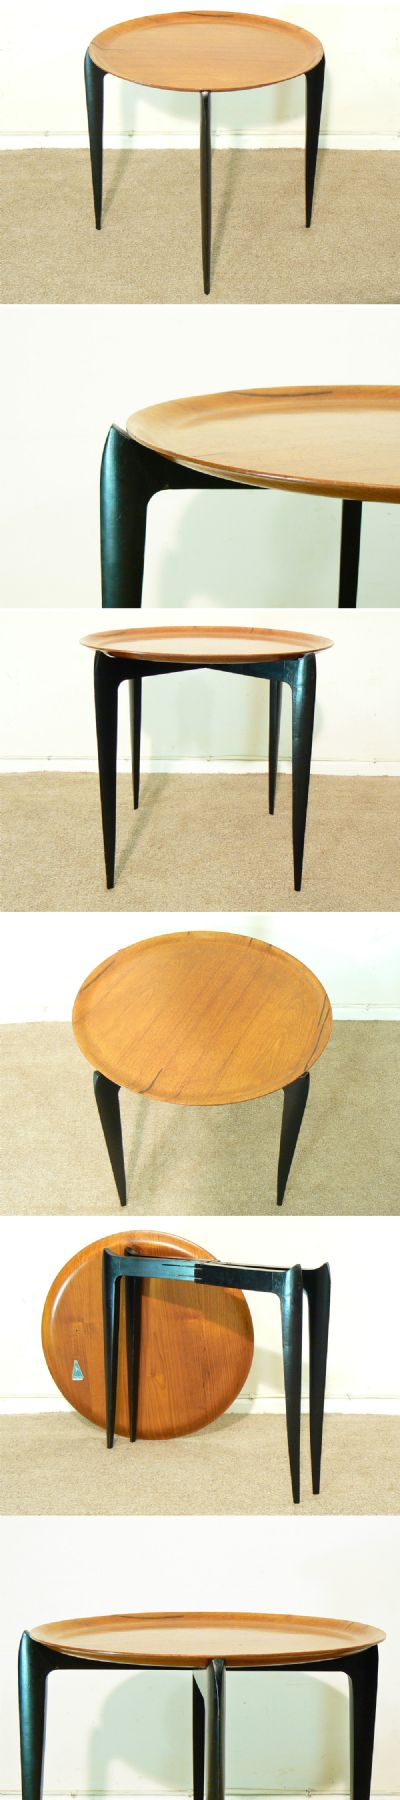 A teak and ebonised. collapsable tray on a stand. Manufactured by Impala c1960s